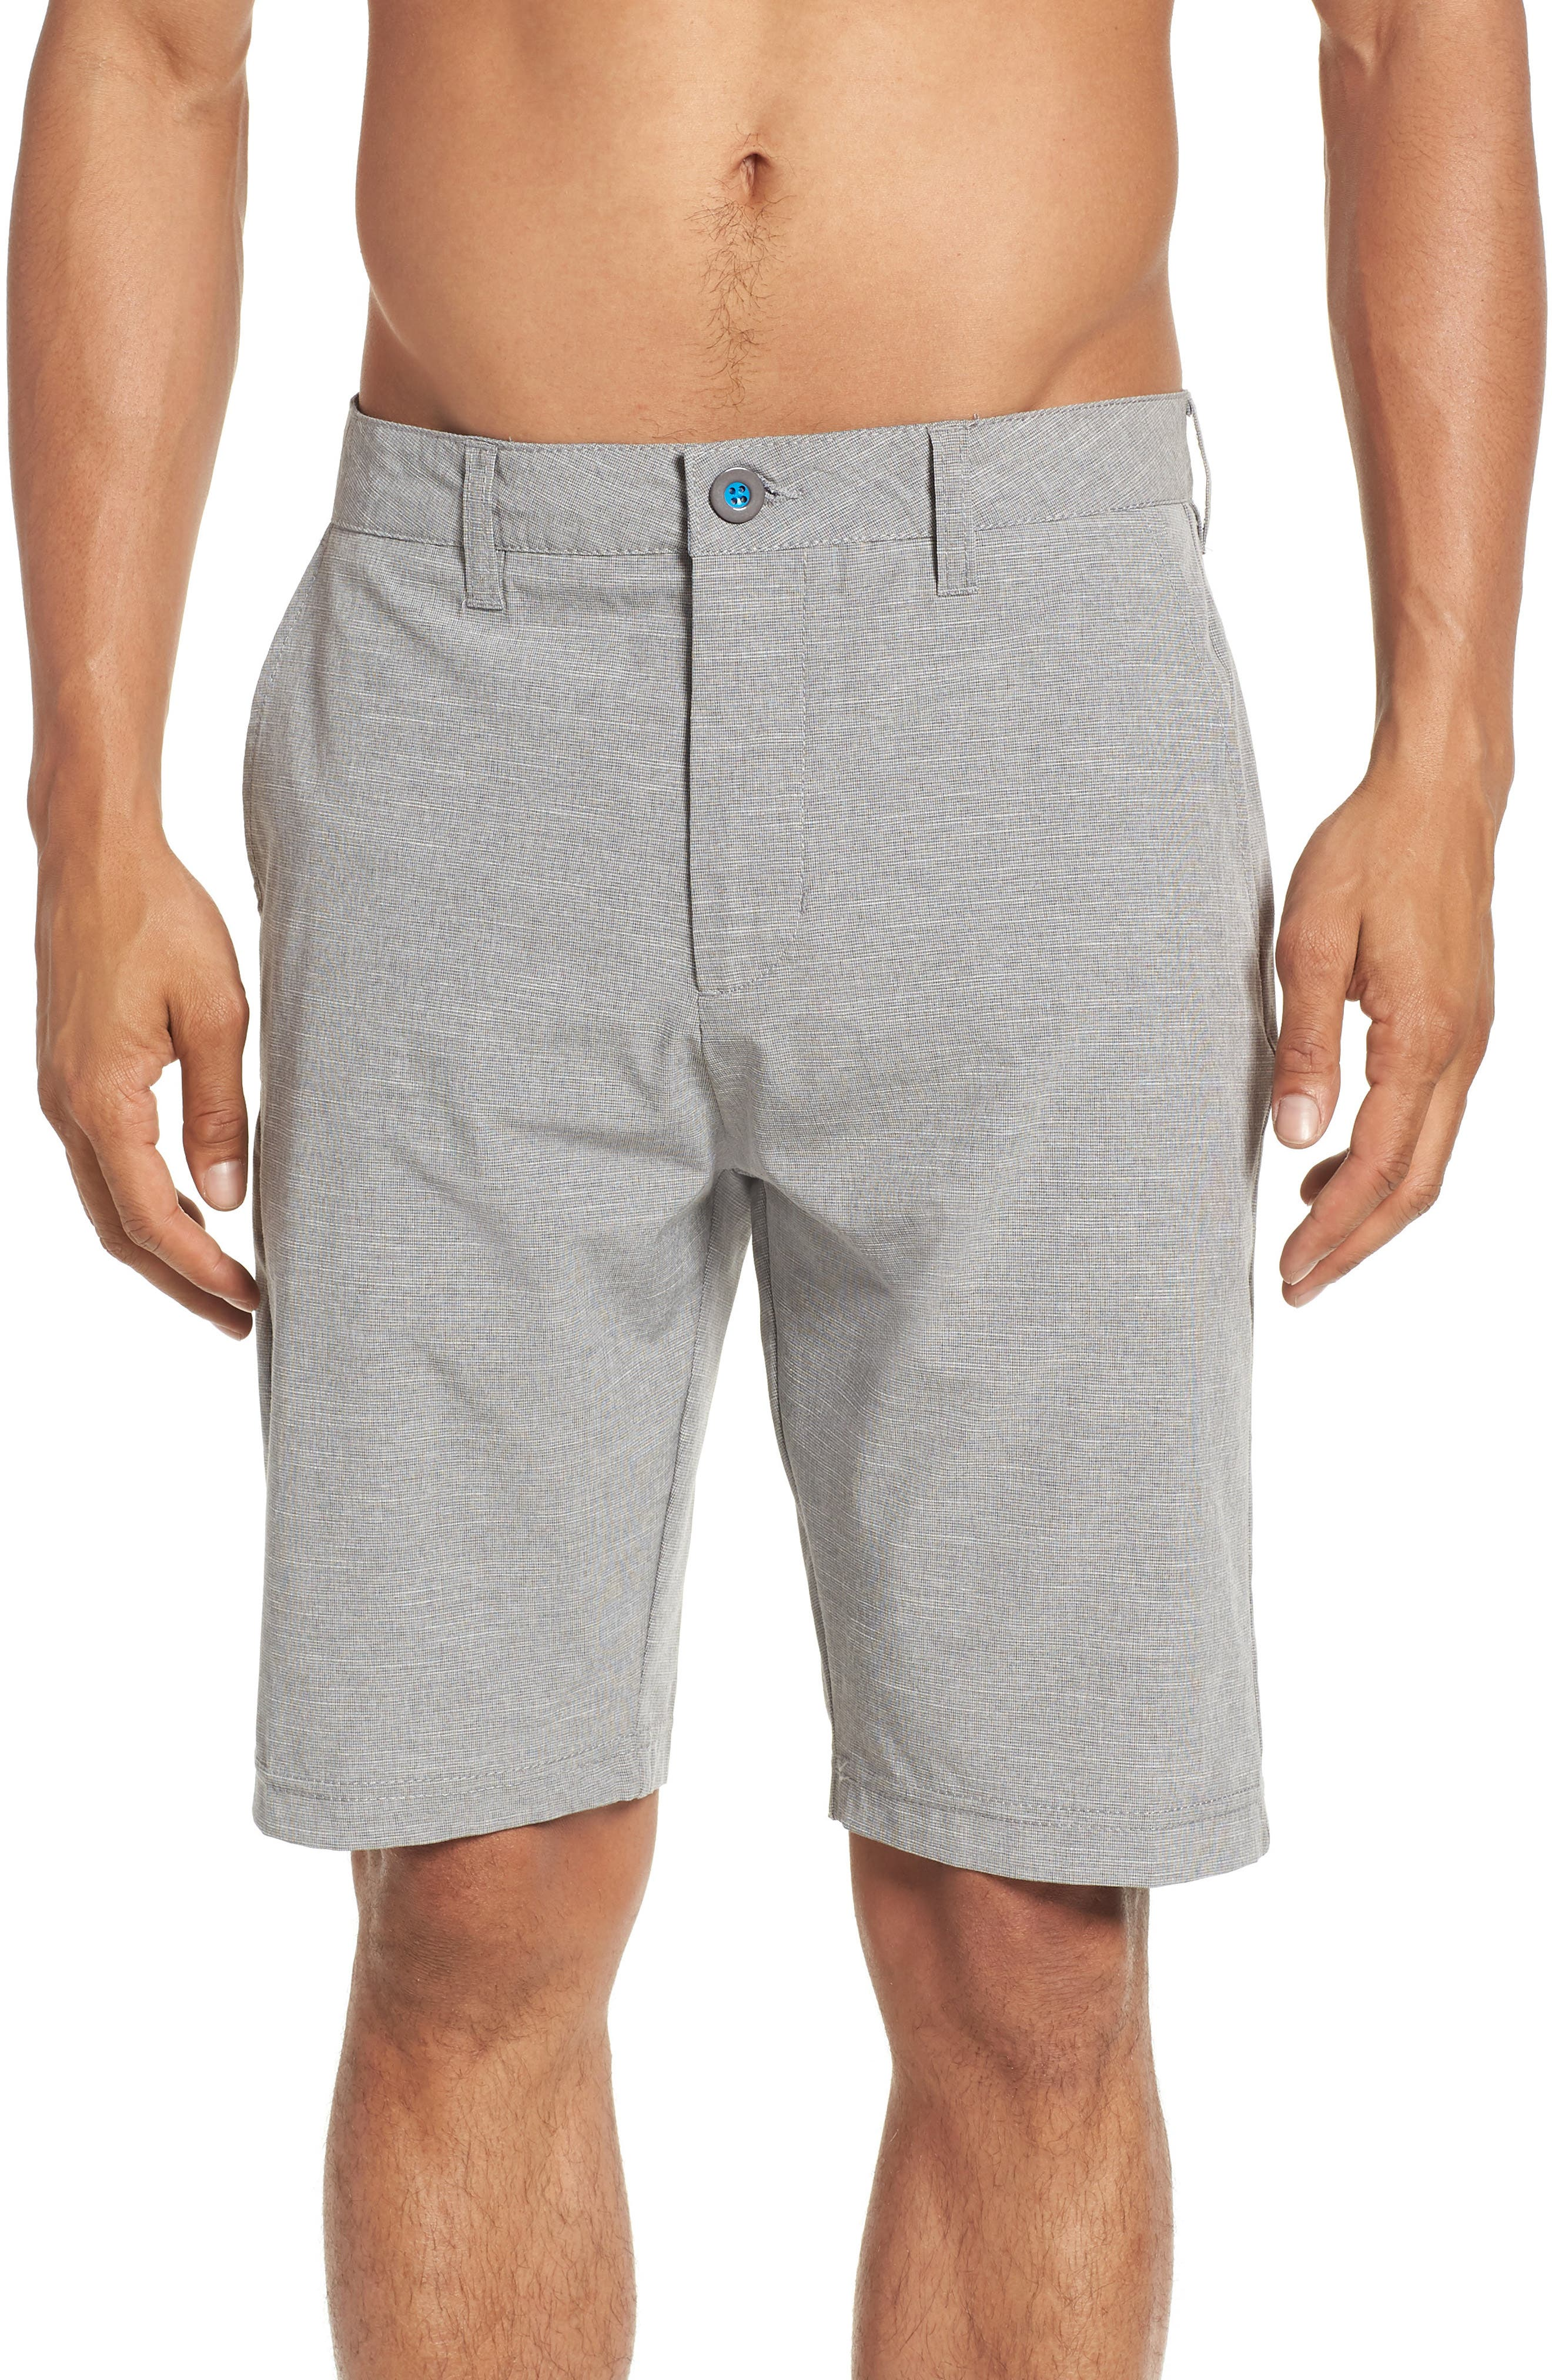 DEVEREUX,                             Cruiser Hybrid Shorts,                             Alternate thumbnail 4, color,                             STEEL